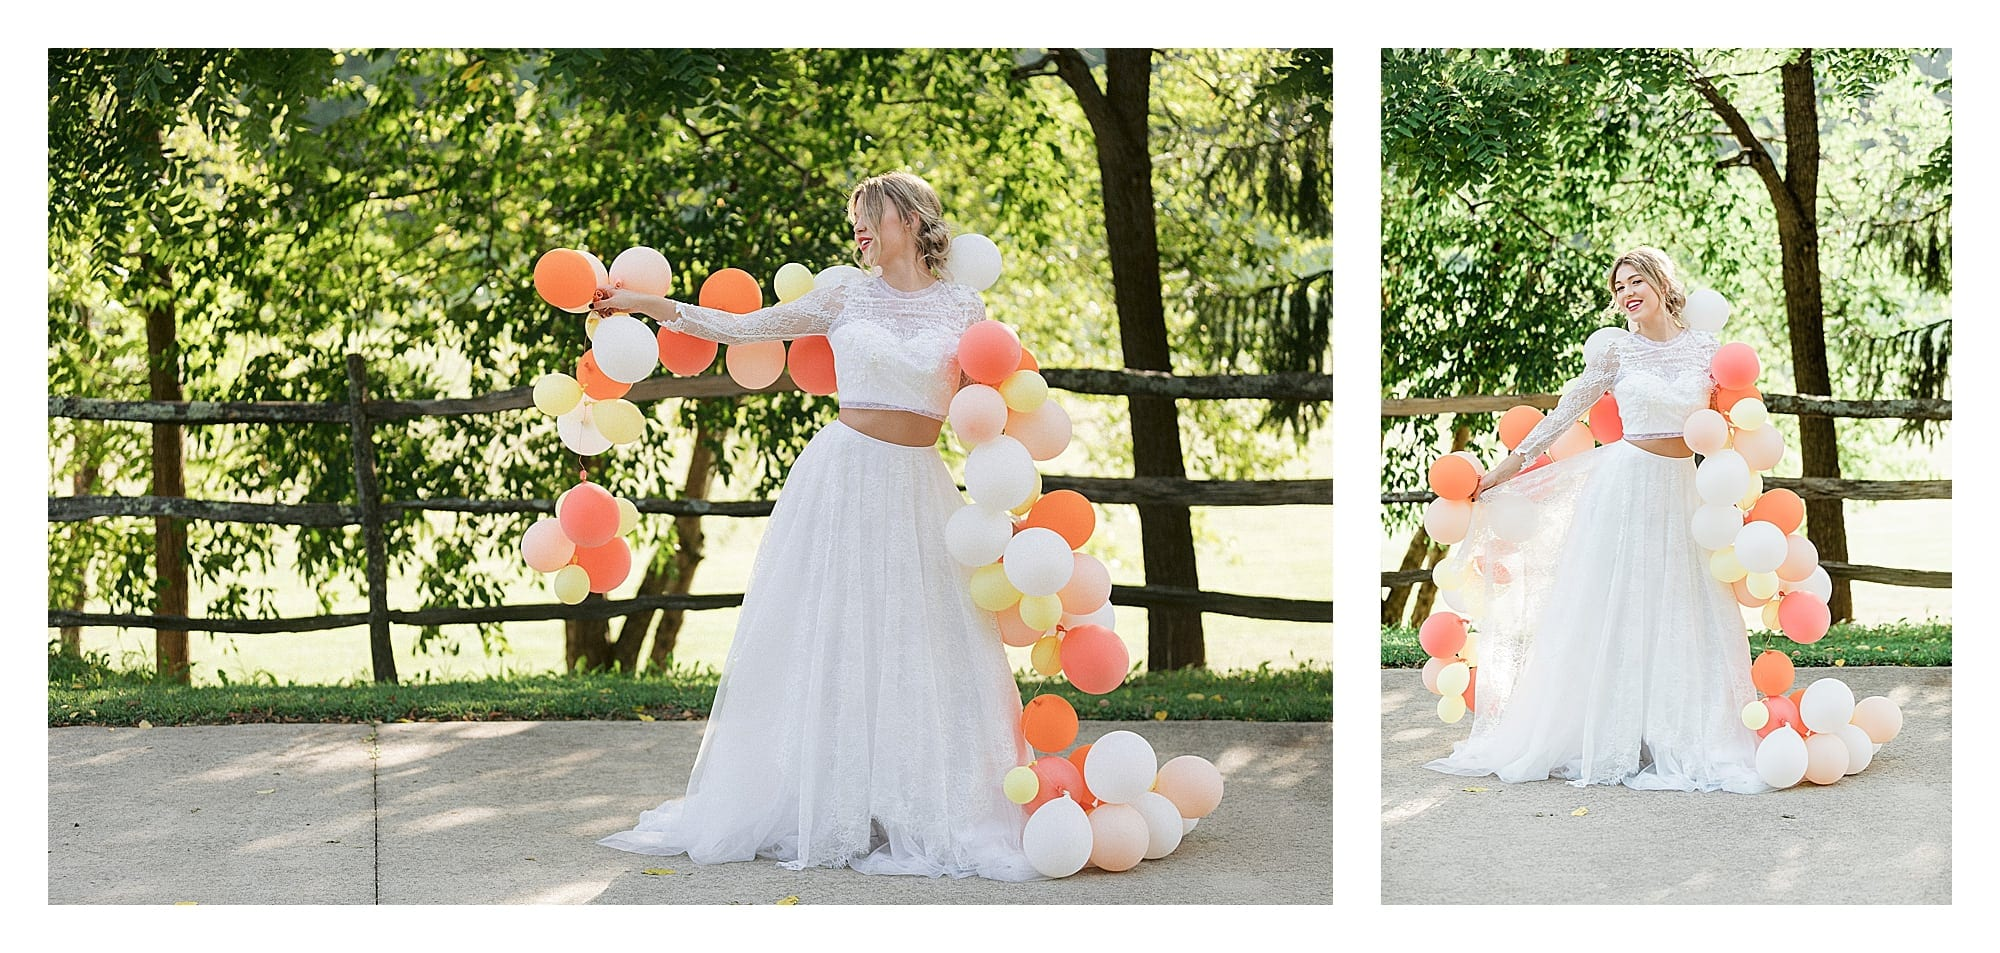 Bride in white two piece lace gown holding string filled with yellow, orange, peach and white balloons laughing